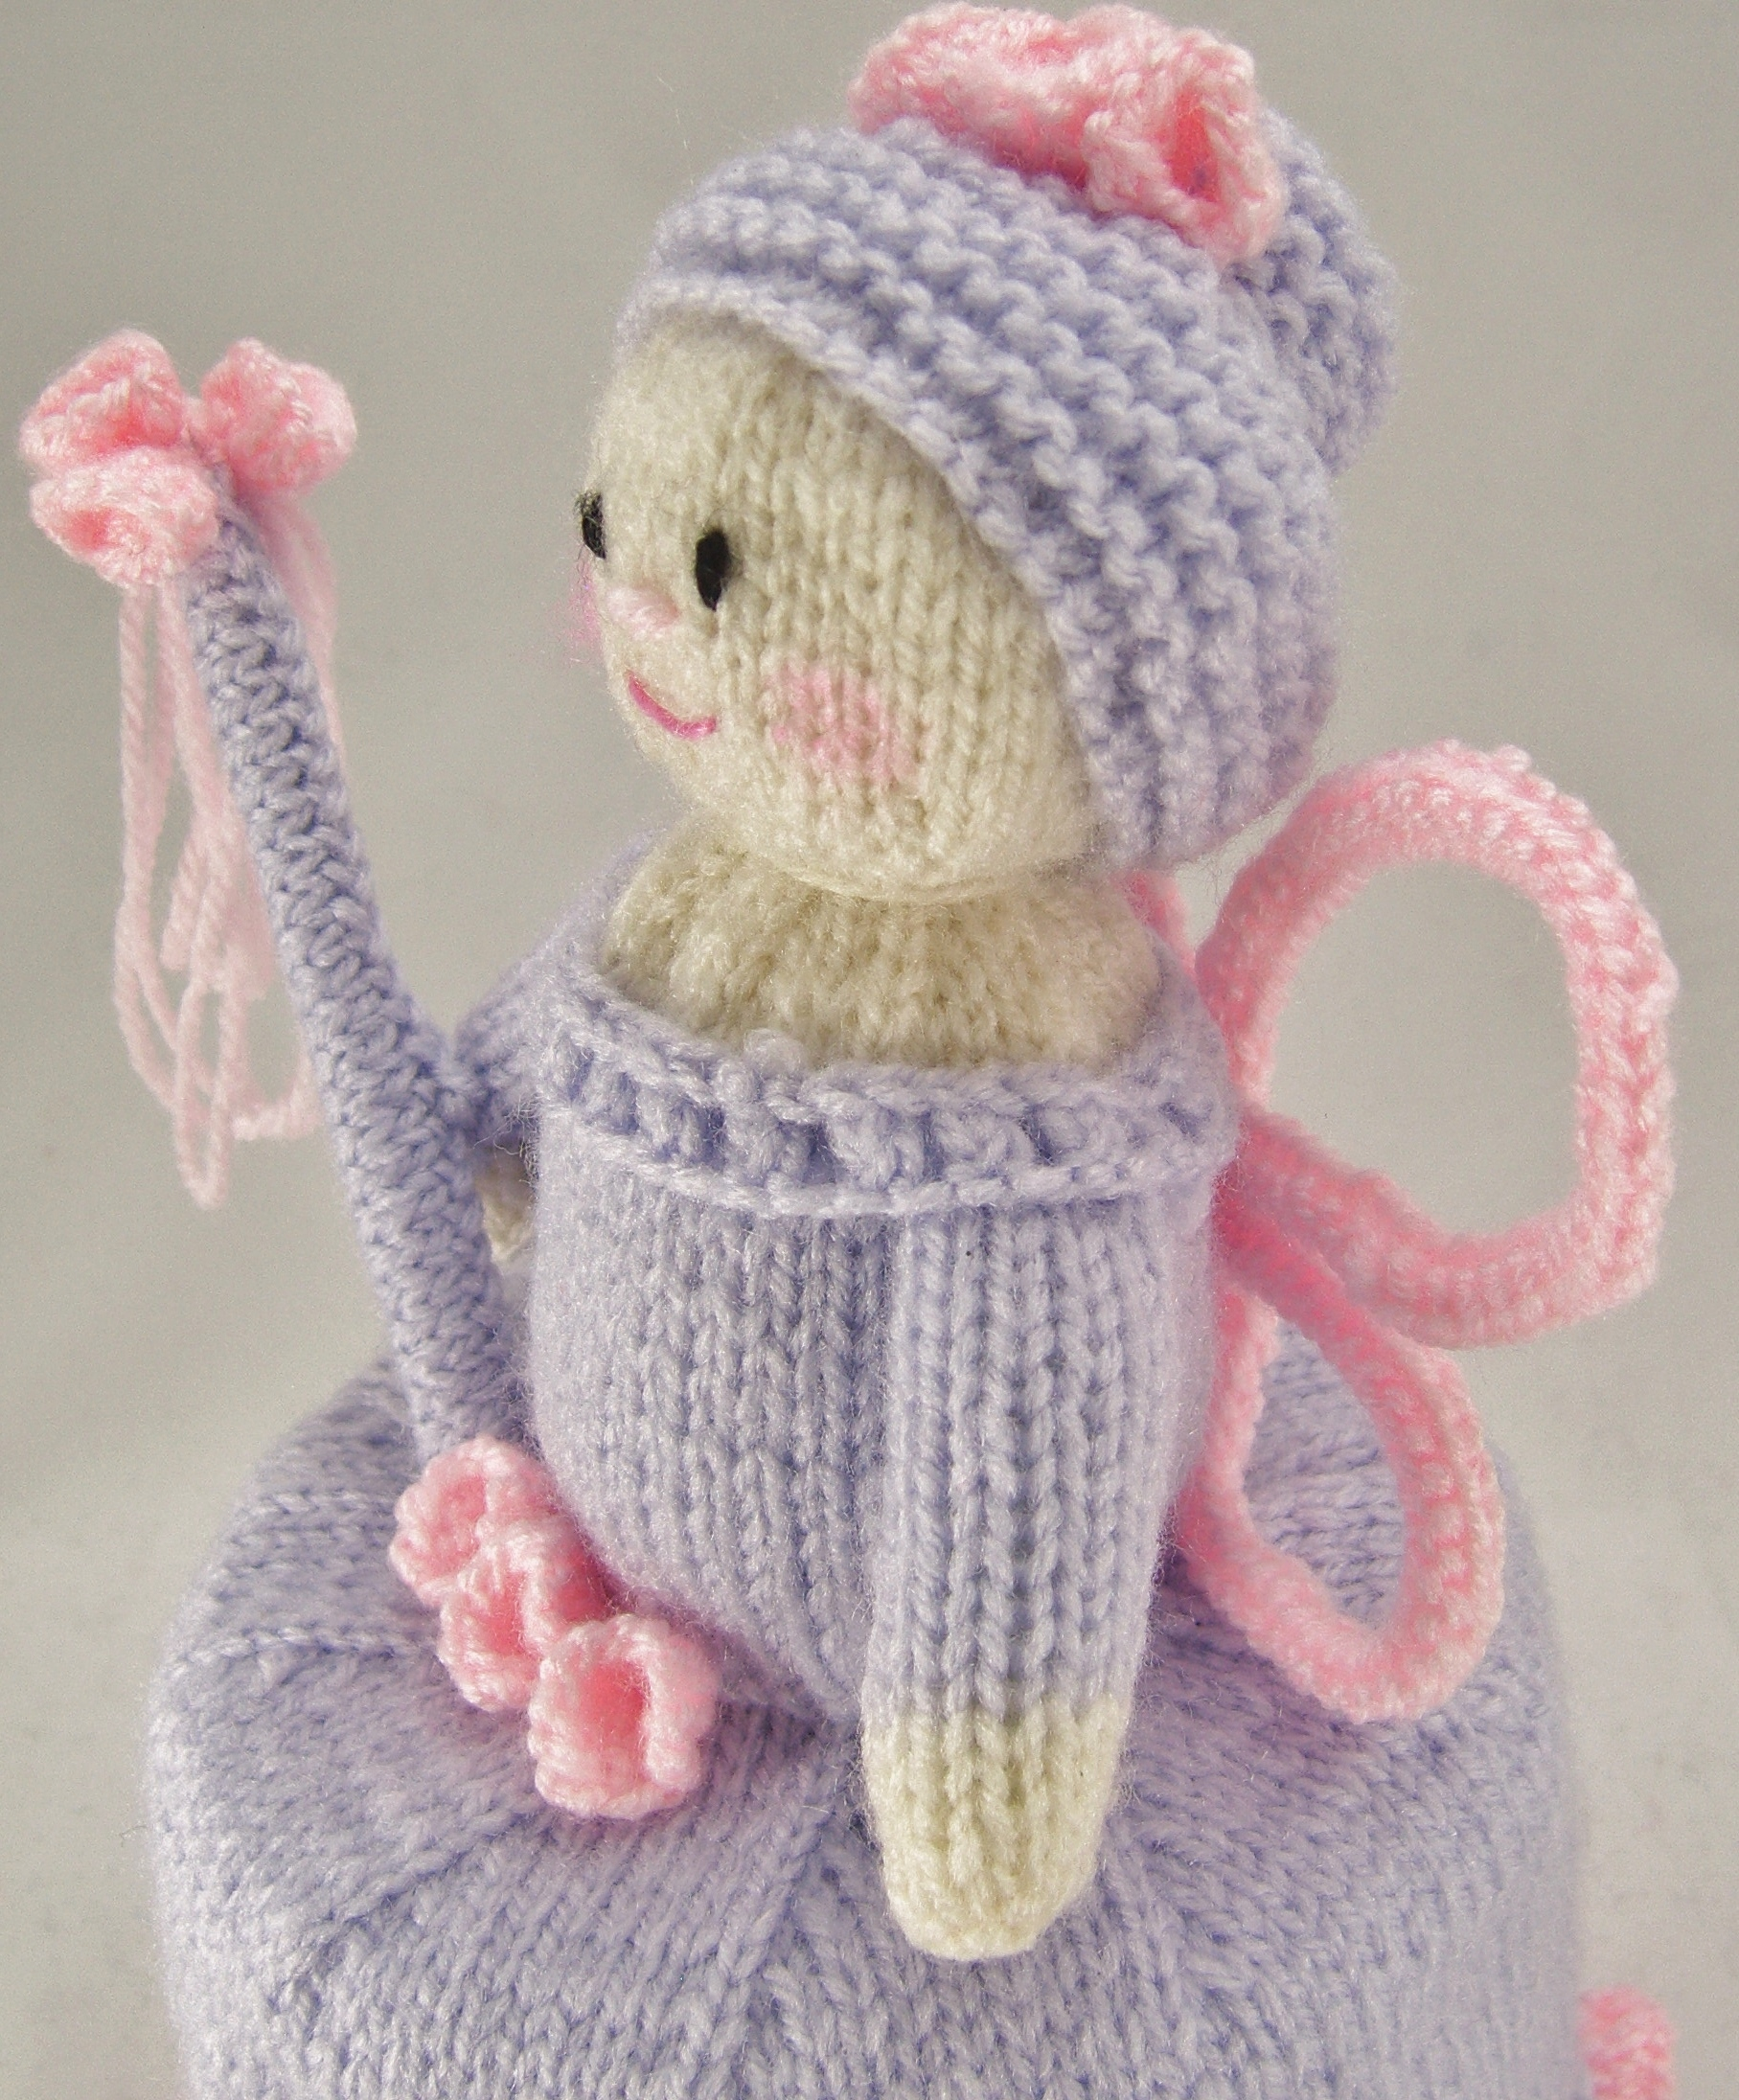 Flower Fairy Toilet Roll Cover Knitting Pattern – Knitting by Post